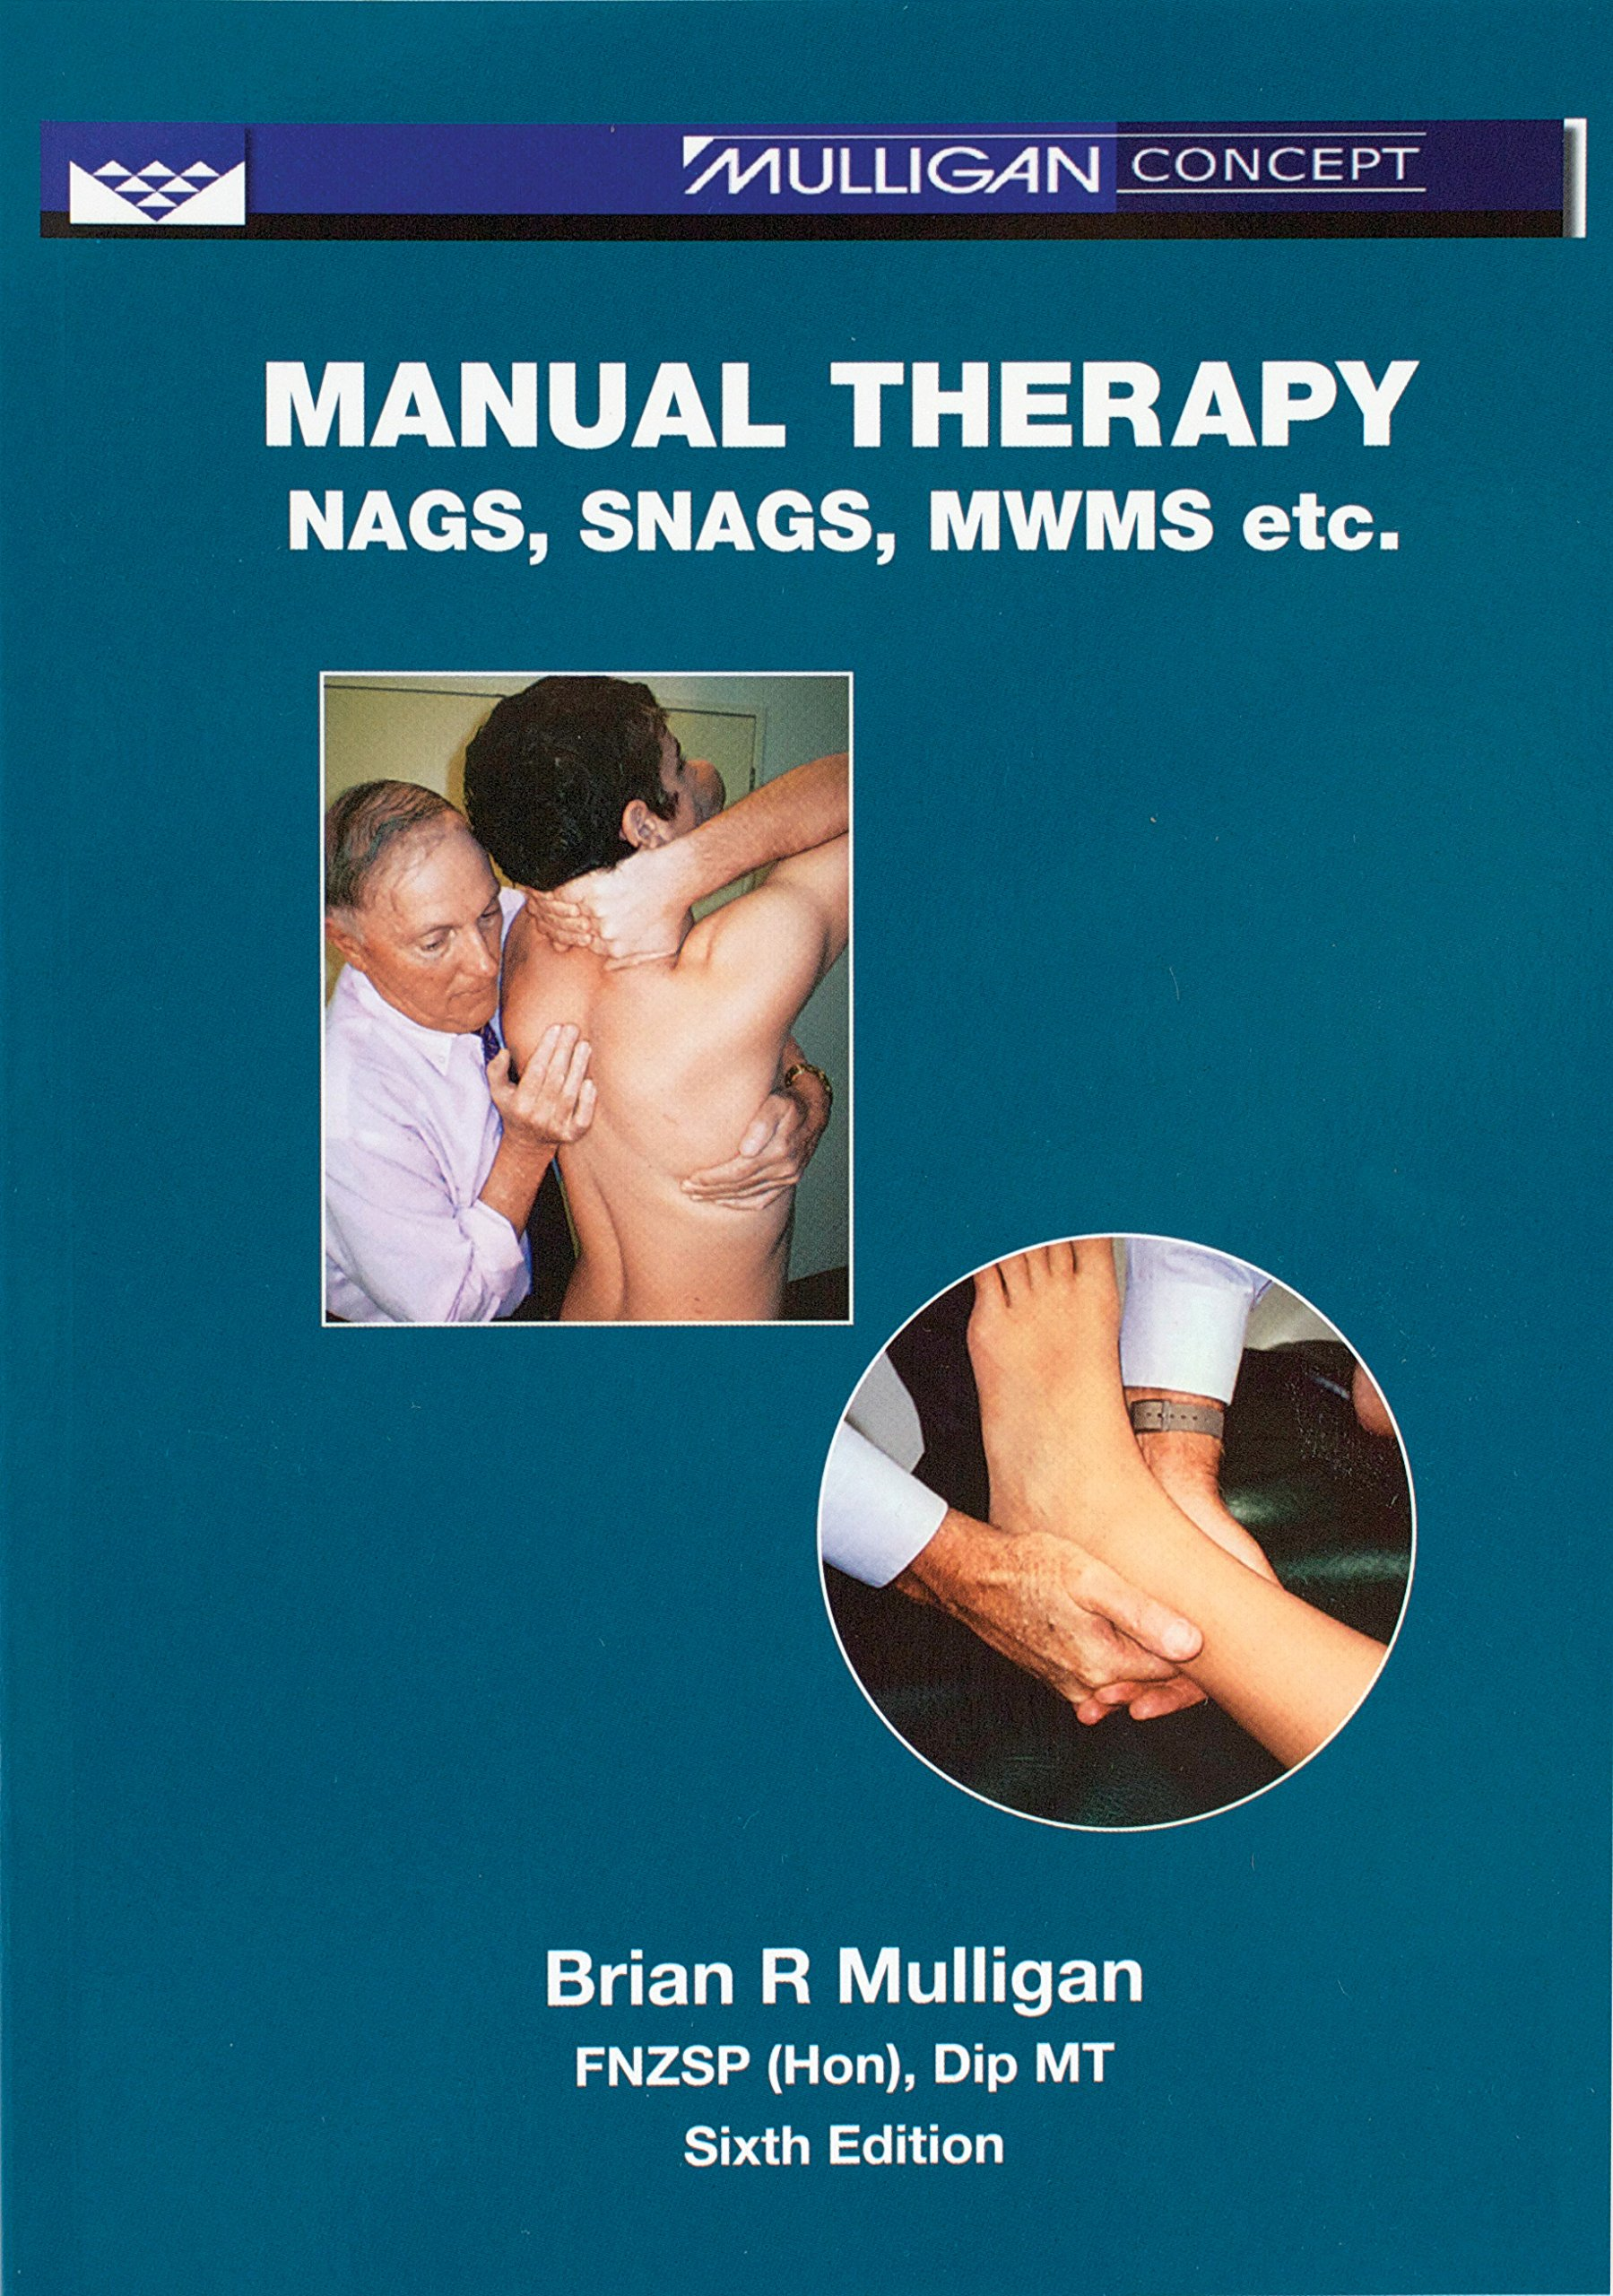 Manual Therapy: Nags, Snags, MWMs, etc - 6th Edition (853-6):  9781877520037: Medicine & Health Science Books @ Amazon.com